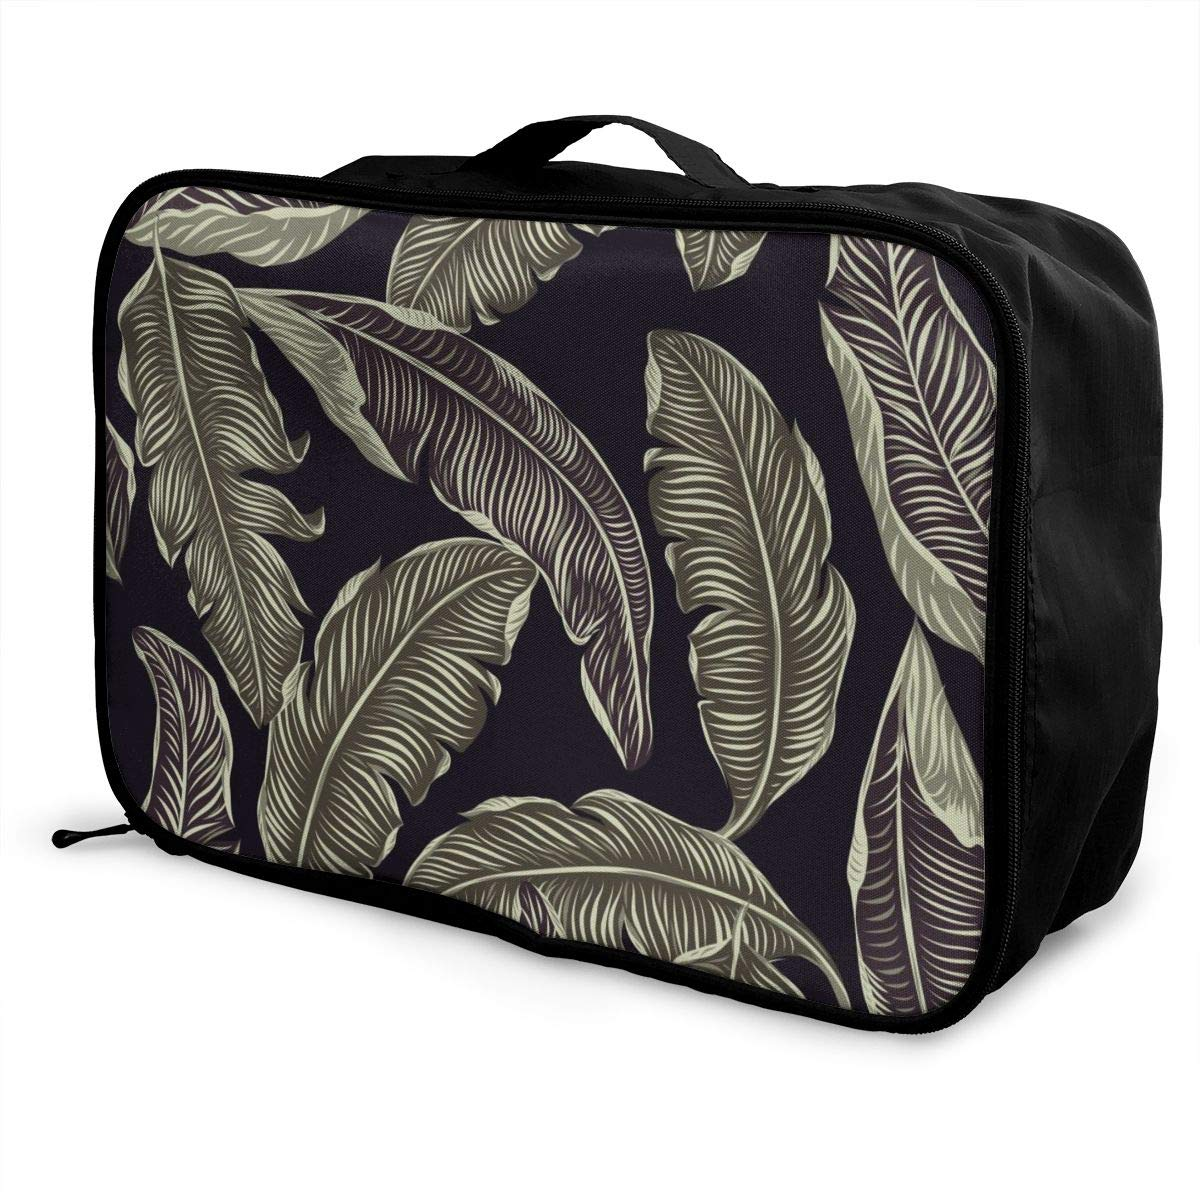 Jungle Leaf Tropical Art Watercolor Travel Lightweight Waterproof Foldable Storage Carry Luggage Large Capacity Portable Luggage Bag Duffel Bag